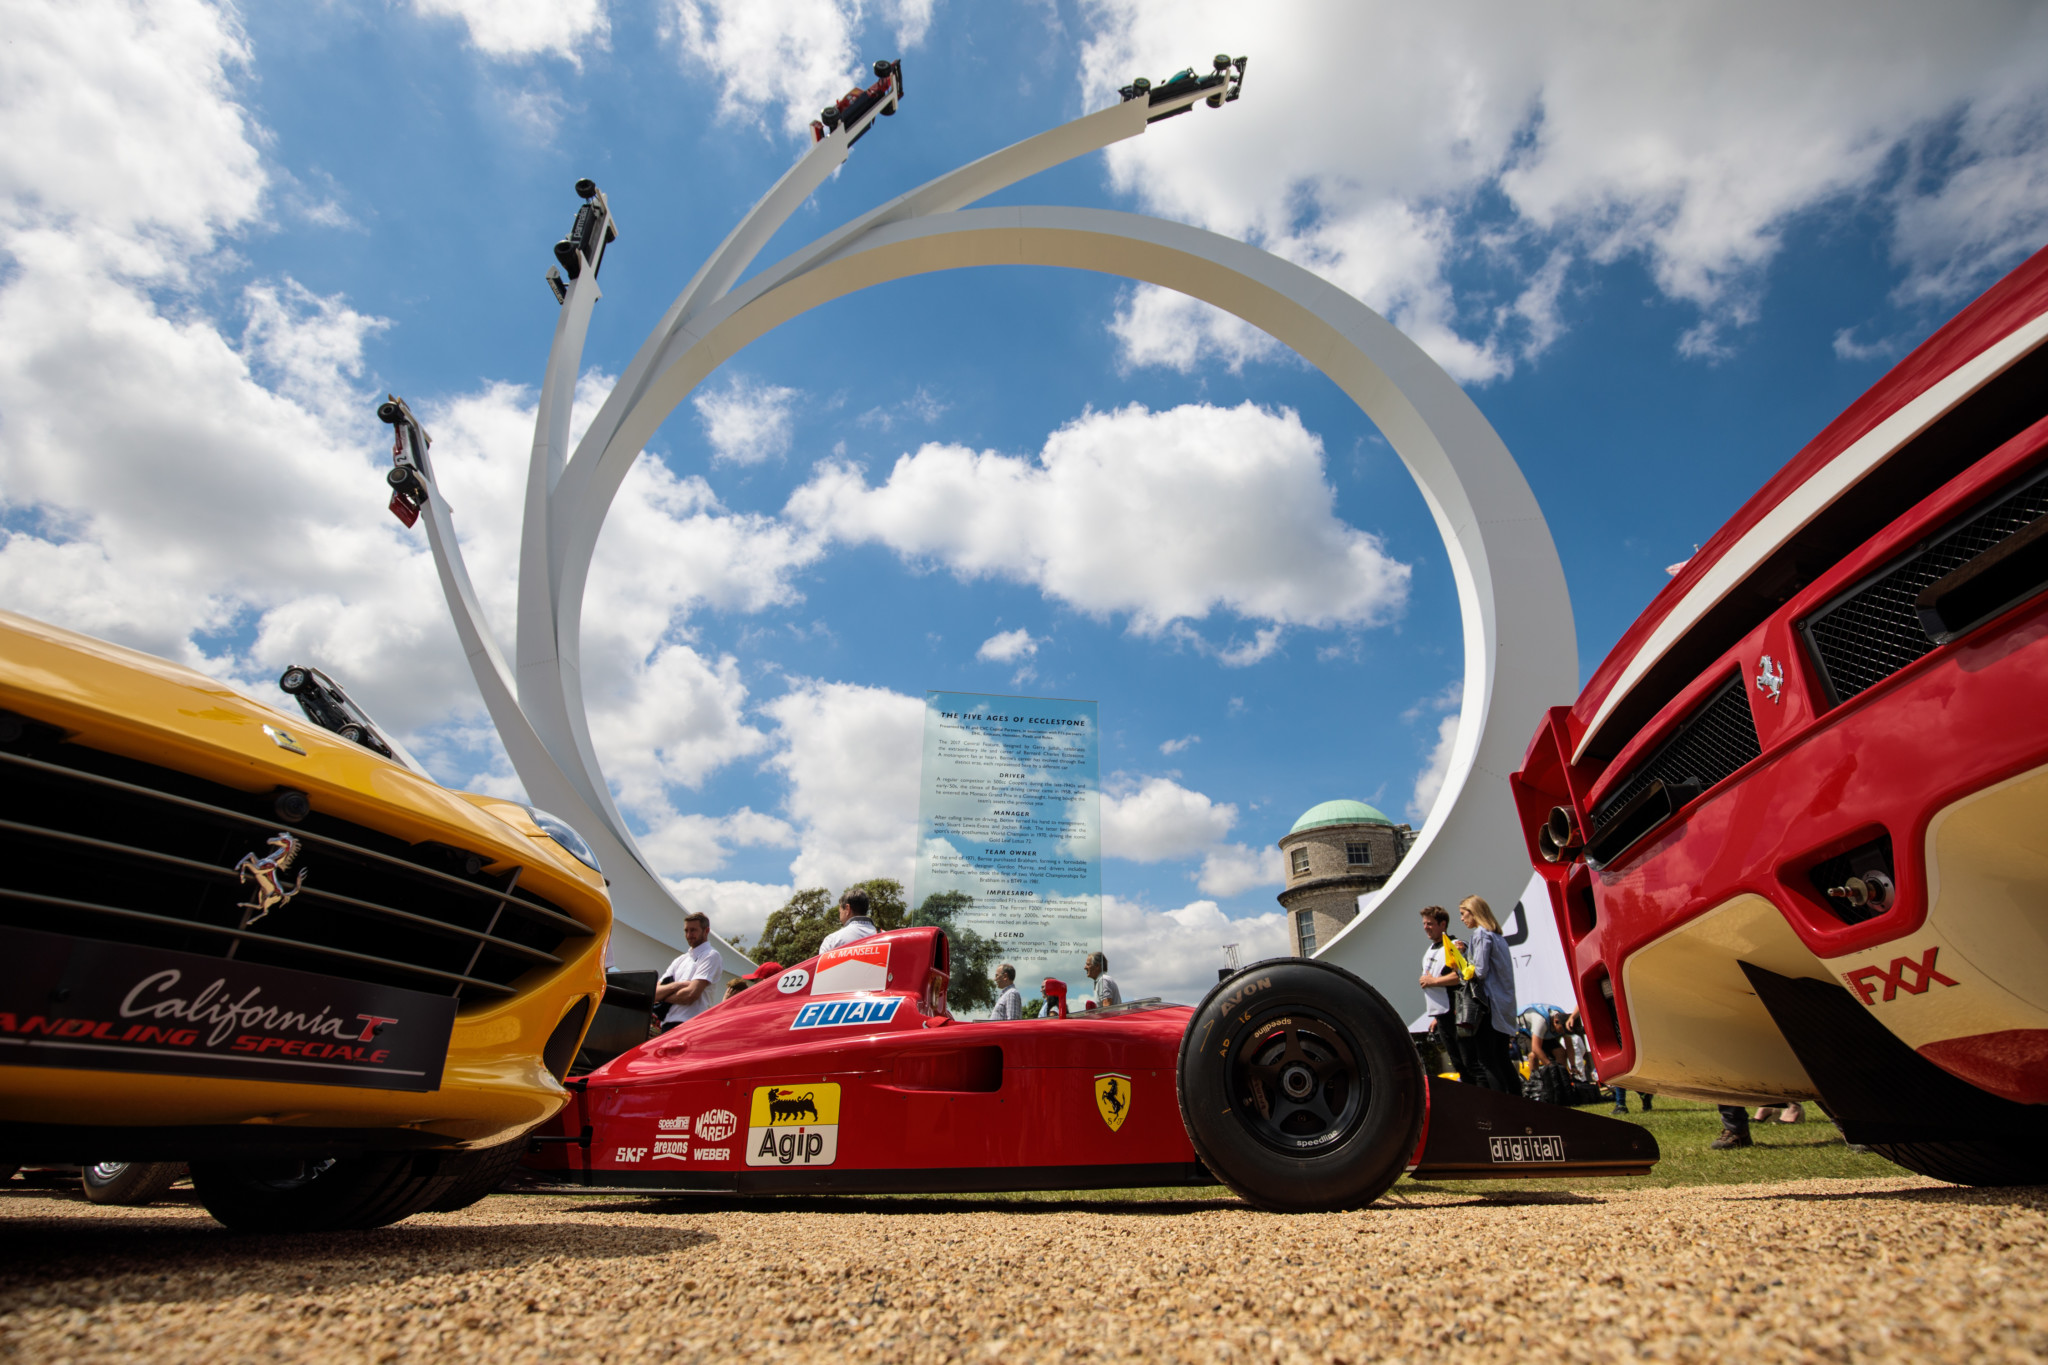 Goodwood Festival of Speed (Photo by Jack Taylor/Getty Images)